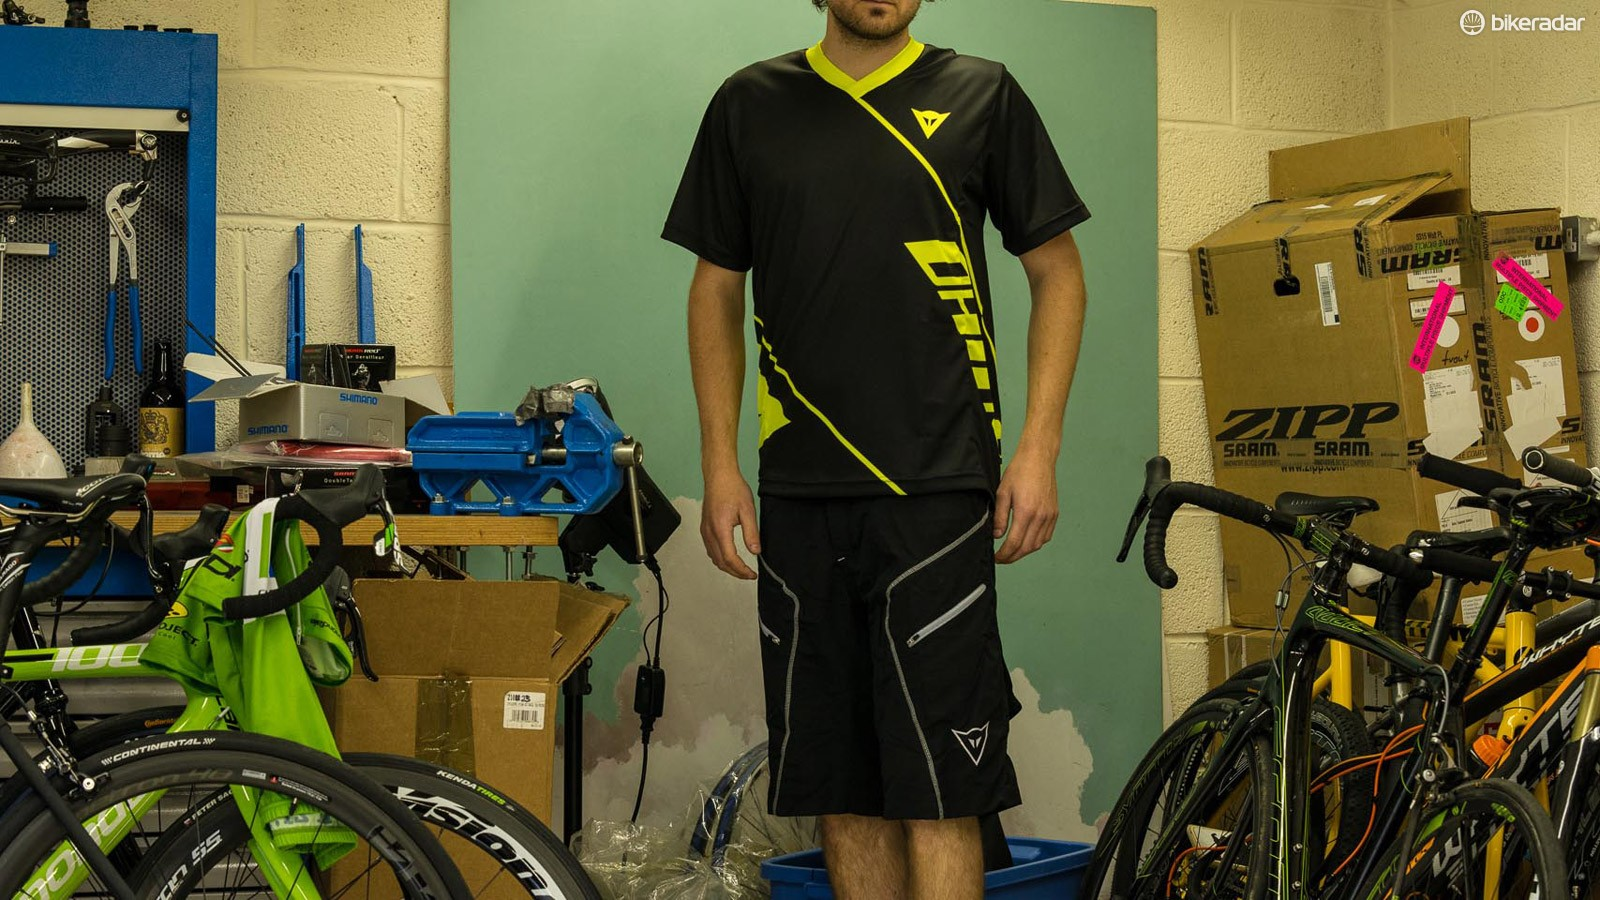 Dainese Basanite jersey and Drifter shorts